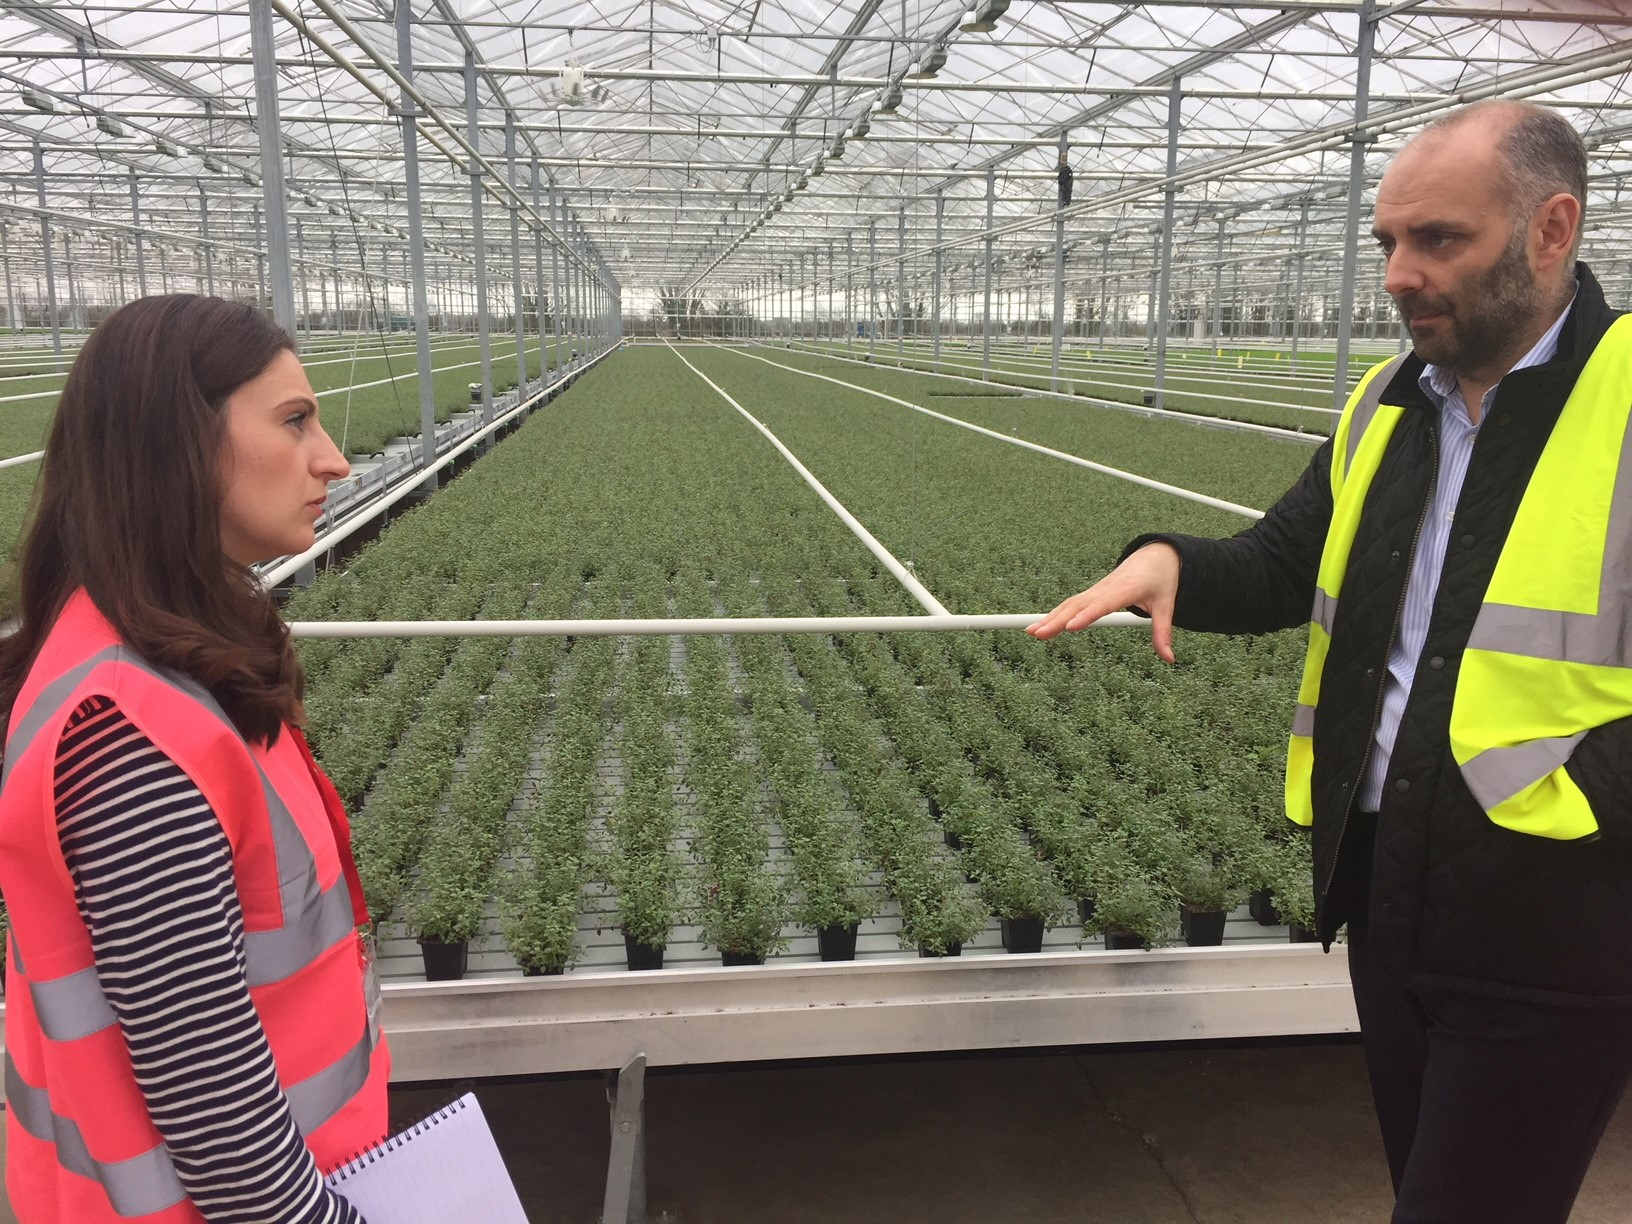 27th March 2018 – Hayley Campbell-Gibbons (Chief Horticultural Advisor at NFU)  visits the WSGA.